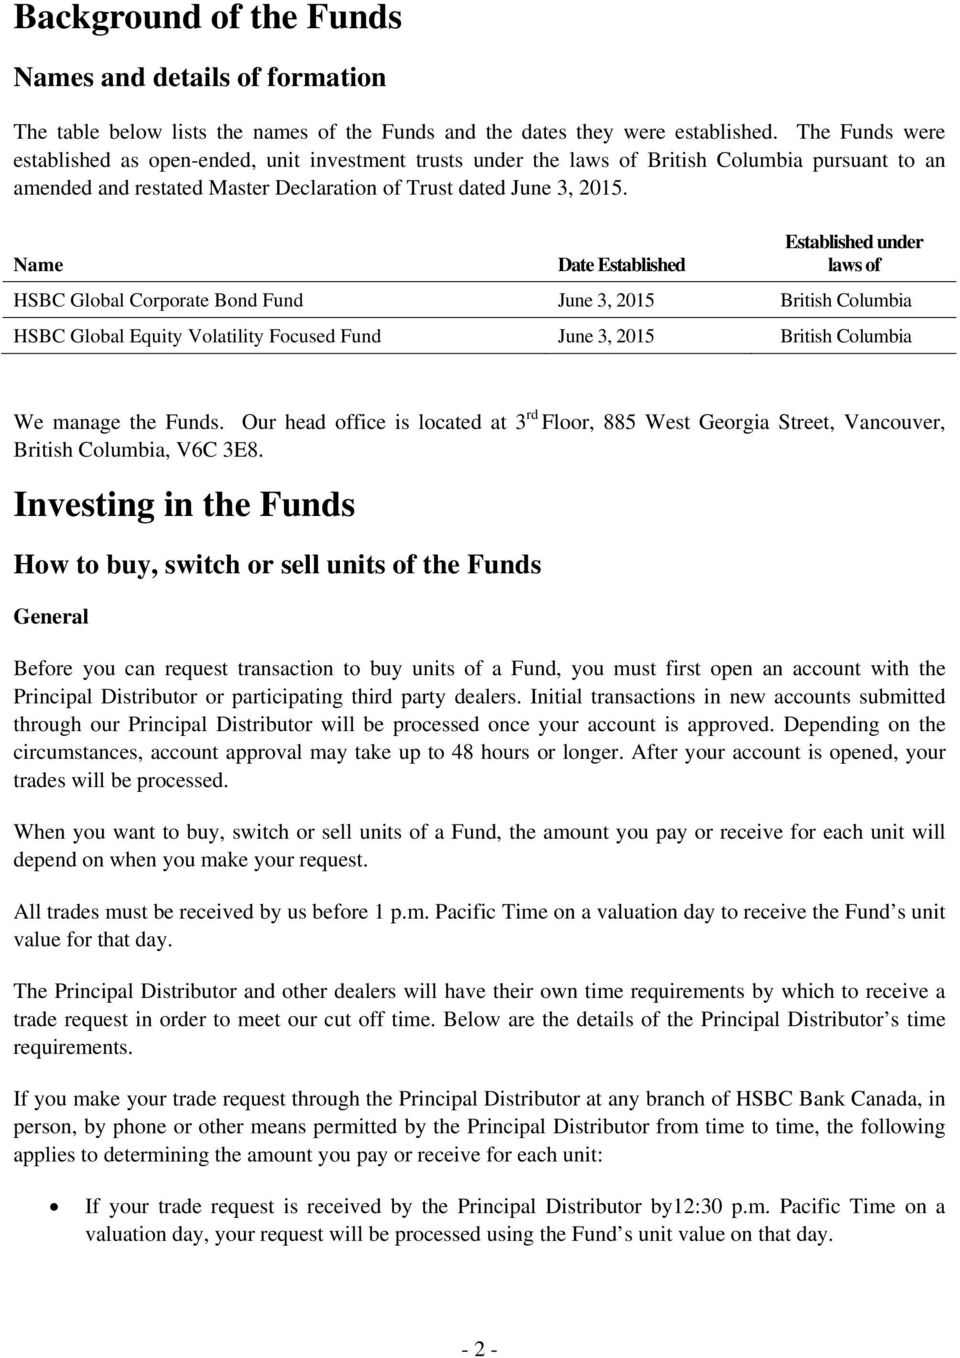 Name Date Established Established under laws of HSBC Global Corporate Bond Fund June 3, 2015 British Columbia HSBC Global Equity Volatility Focused Fund June 3, 2015 British Columbia We manage the